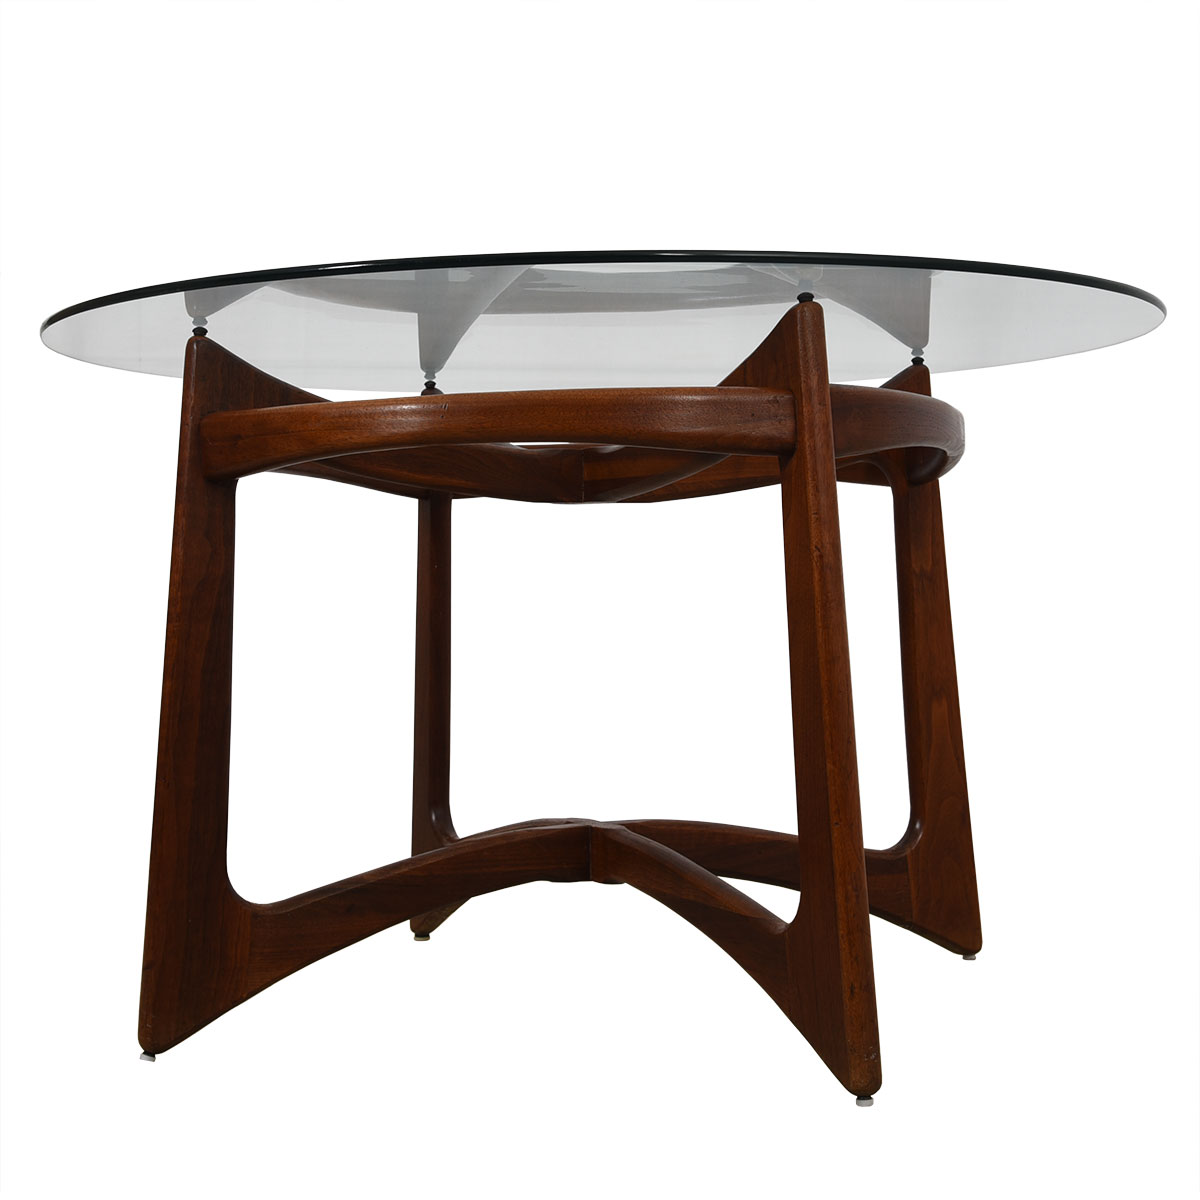 Adrian Pearsall Round Glass Top Dining Table w/ 'Organic' Walnut Base